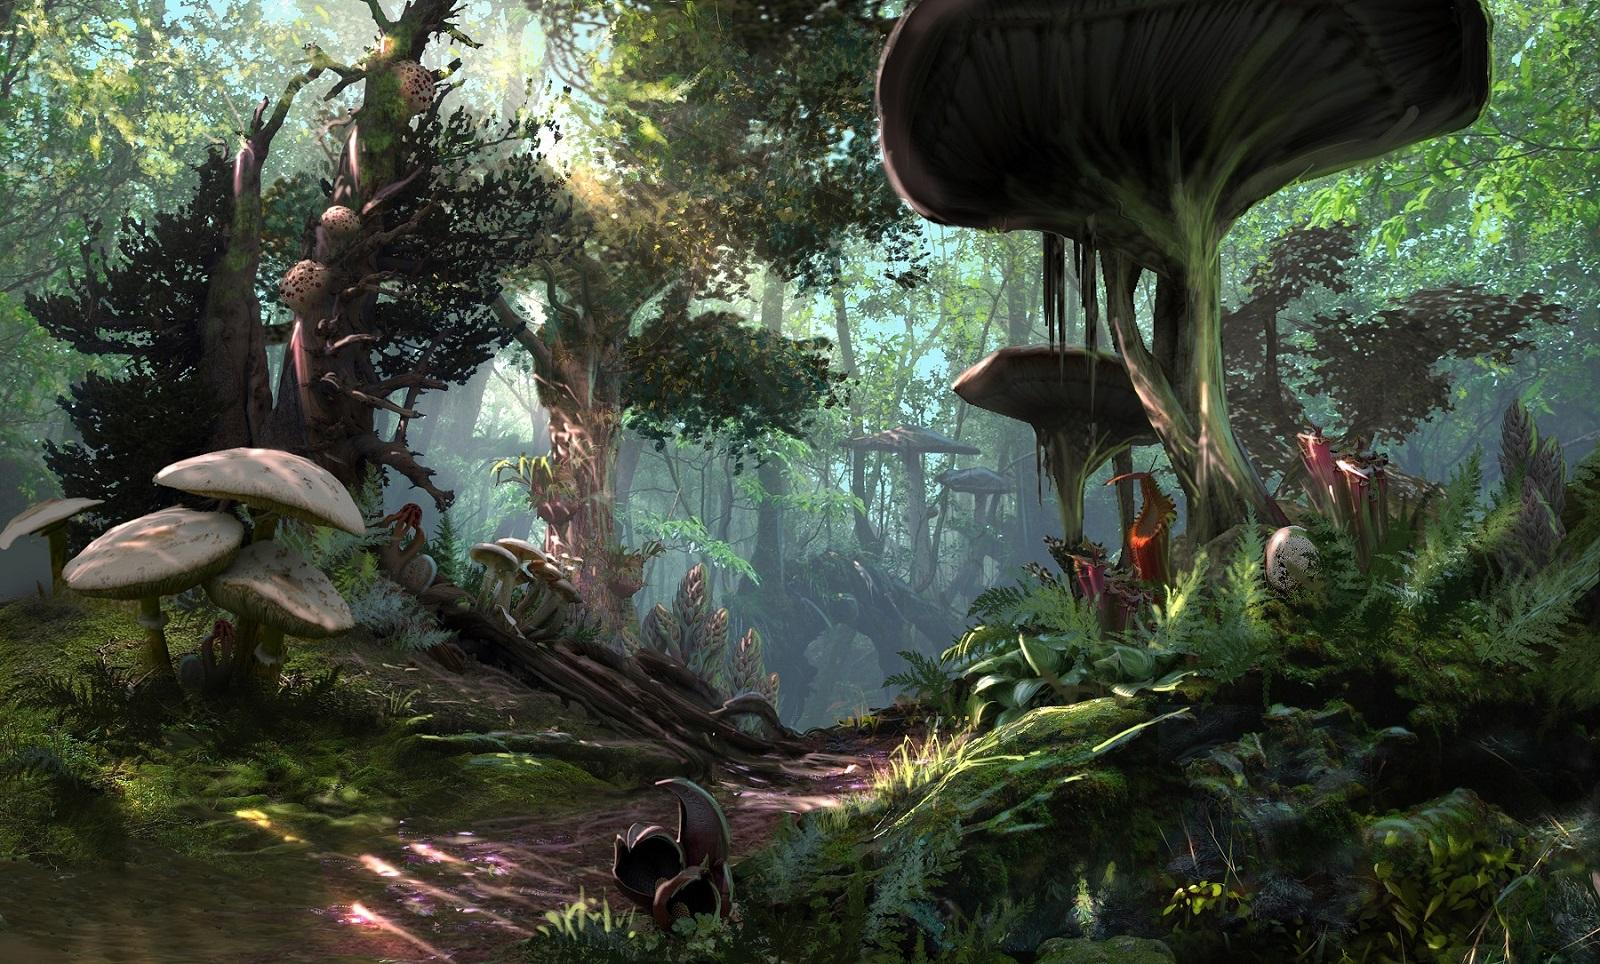 Review: The Elder Scrolls Online: Morrowind is a great expansion that delivers on storytelling